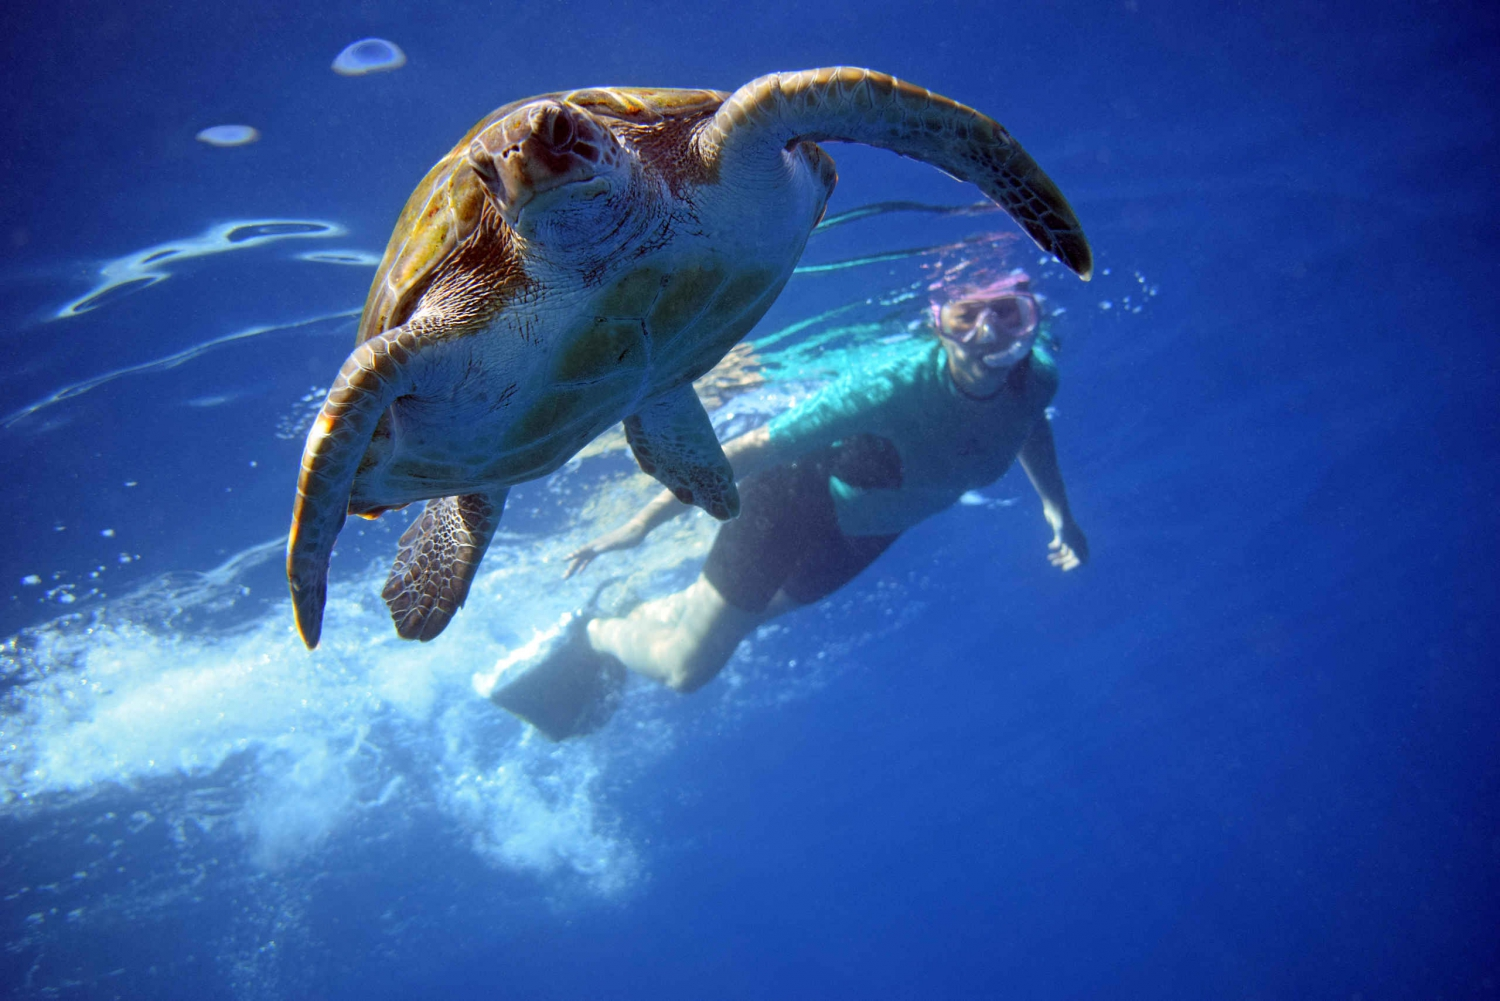 Snorkeling with Turtles and Kayaking with Dolphins